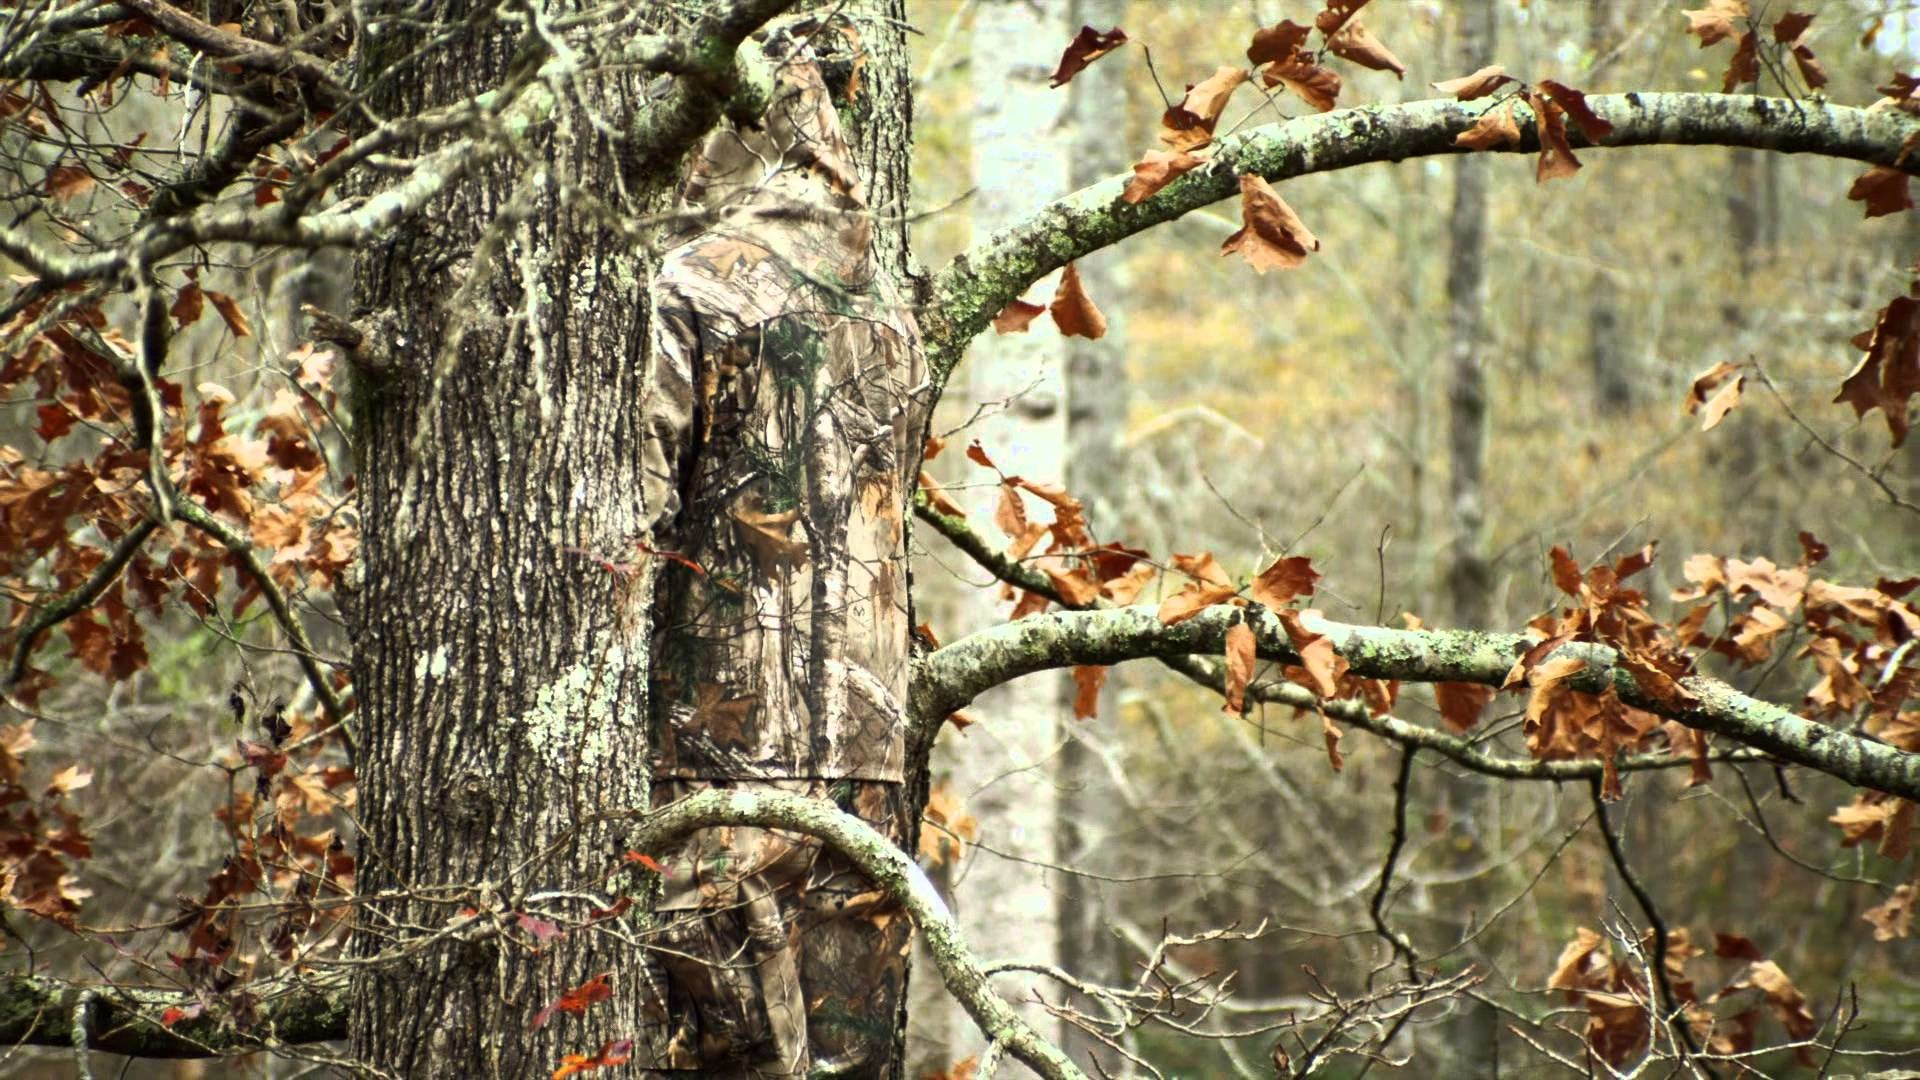 Realtree Wallpaper For Computer: Browning Wallpaper Camo (53+ Images